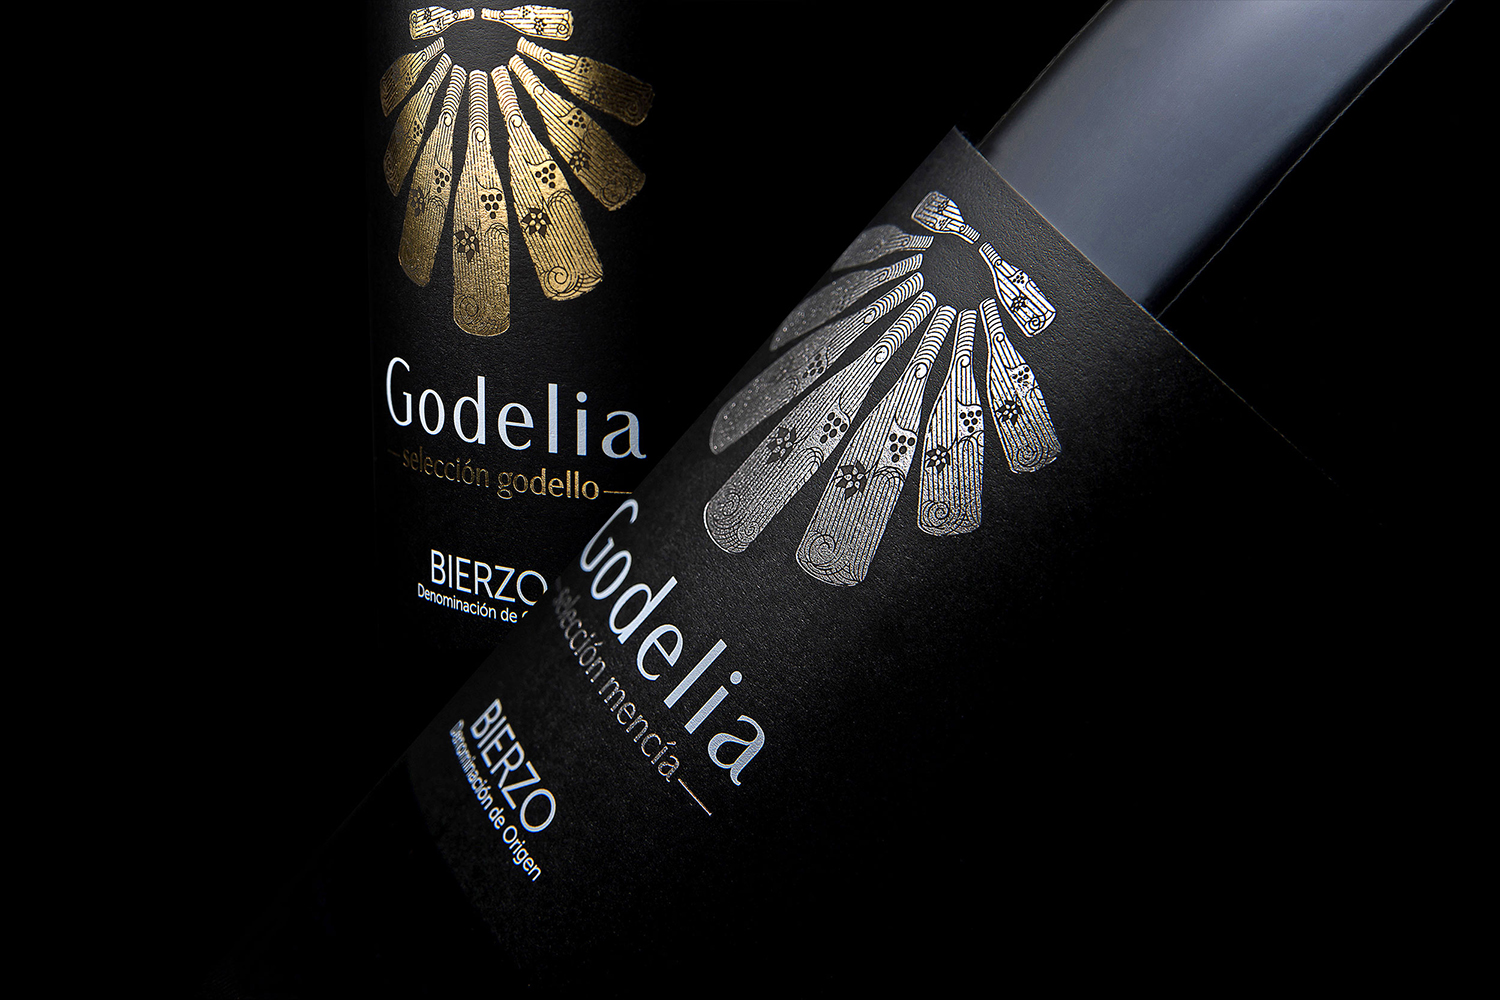 Godelia Selección Limited Production Wine Labels Designed by Salvi Design